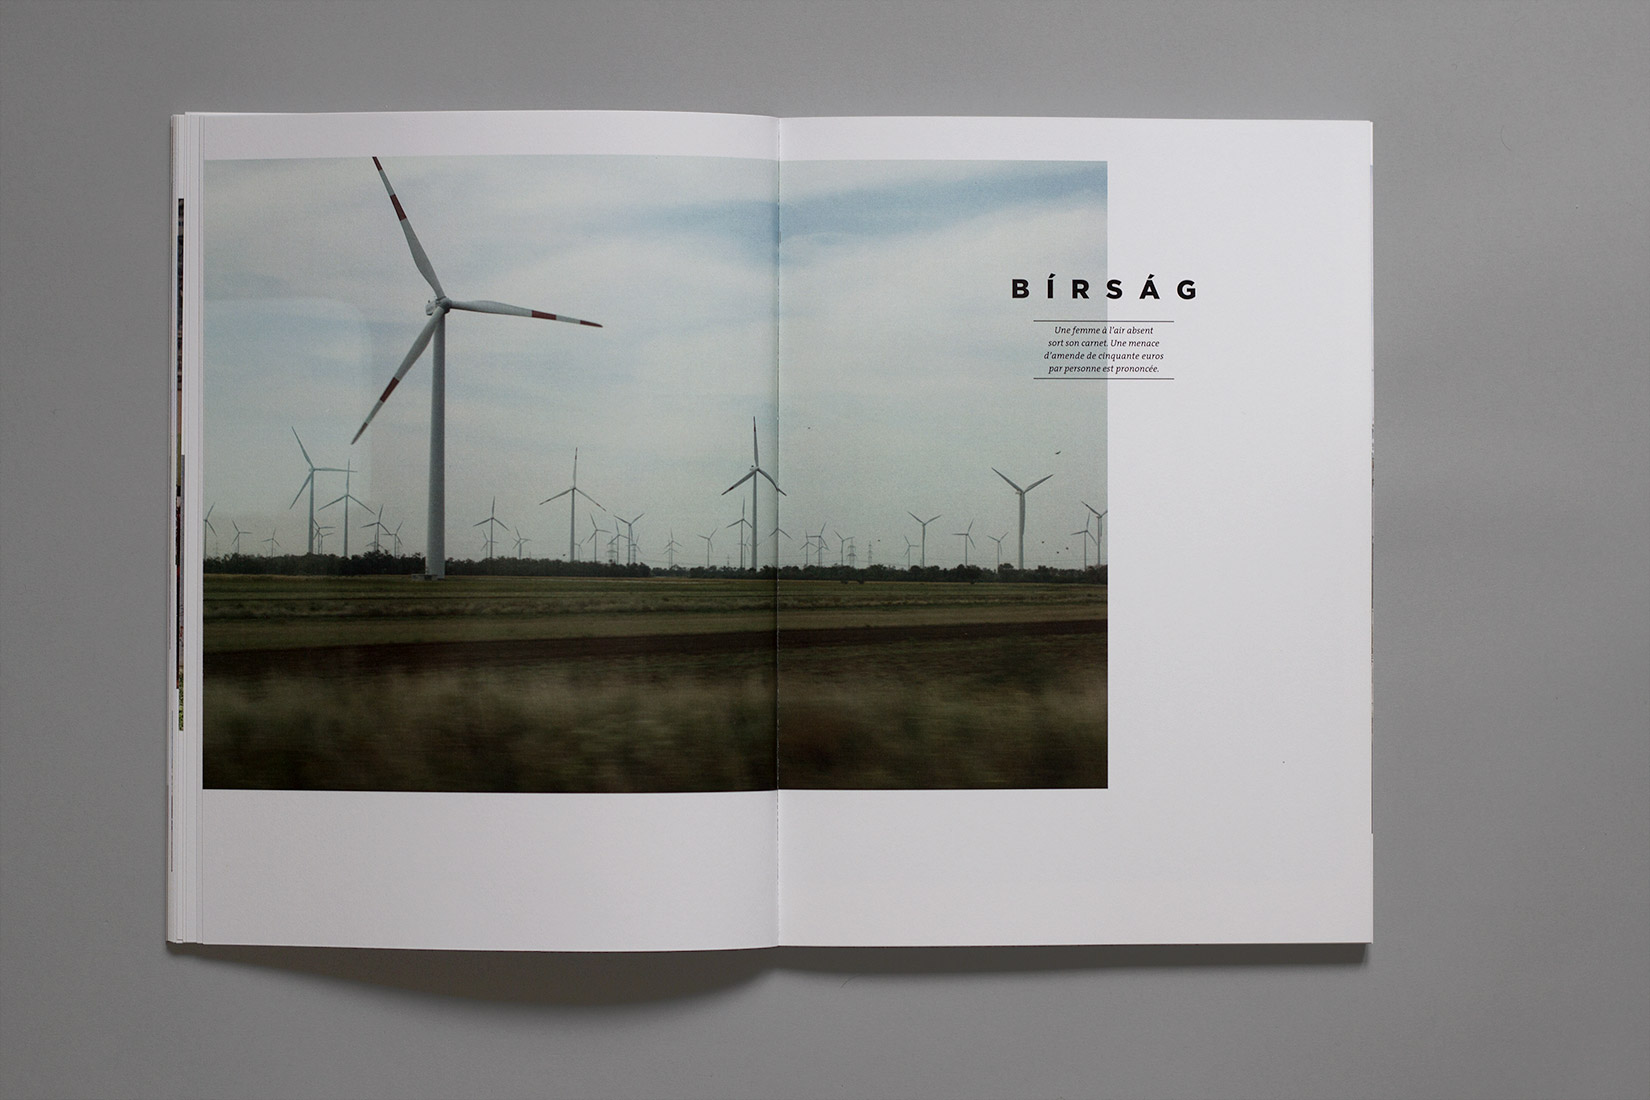 Study trip, book, train, wind turbines, field